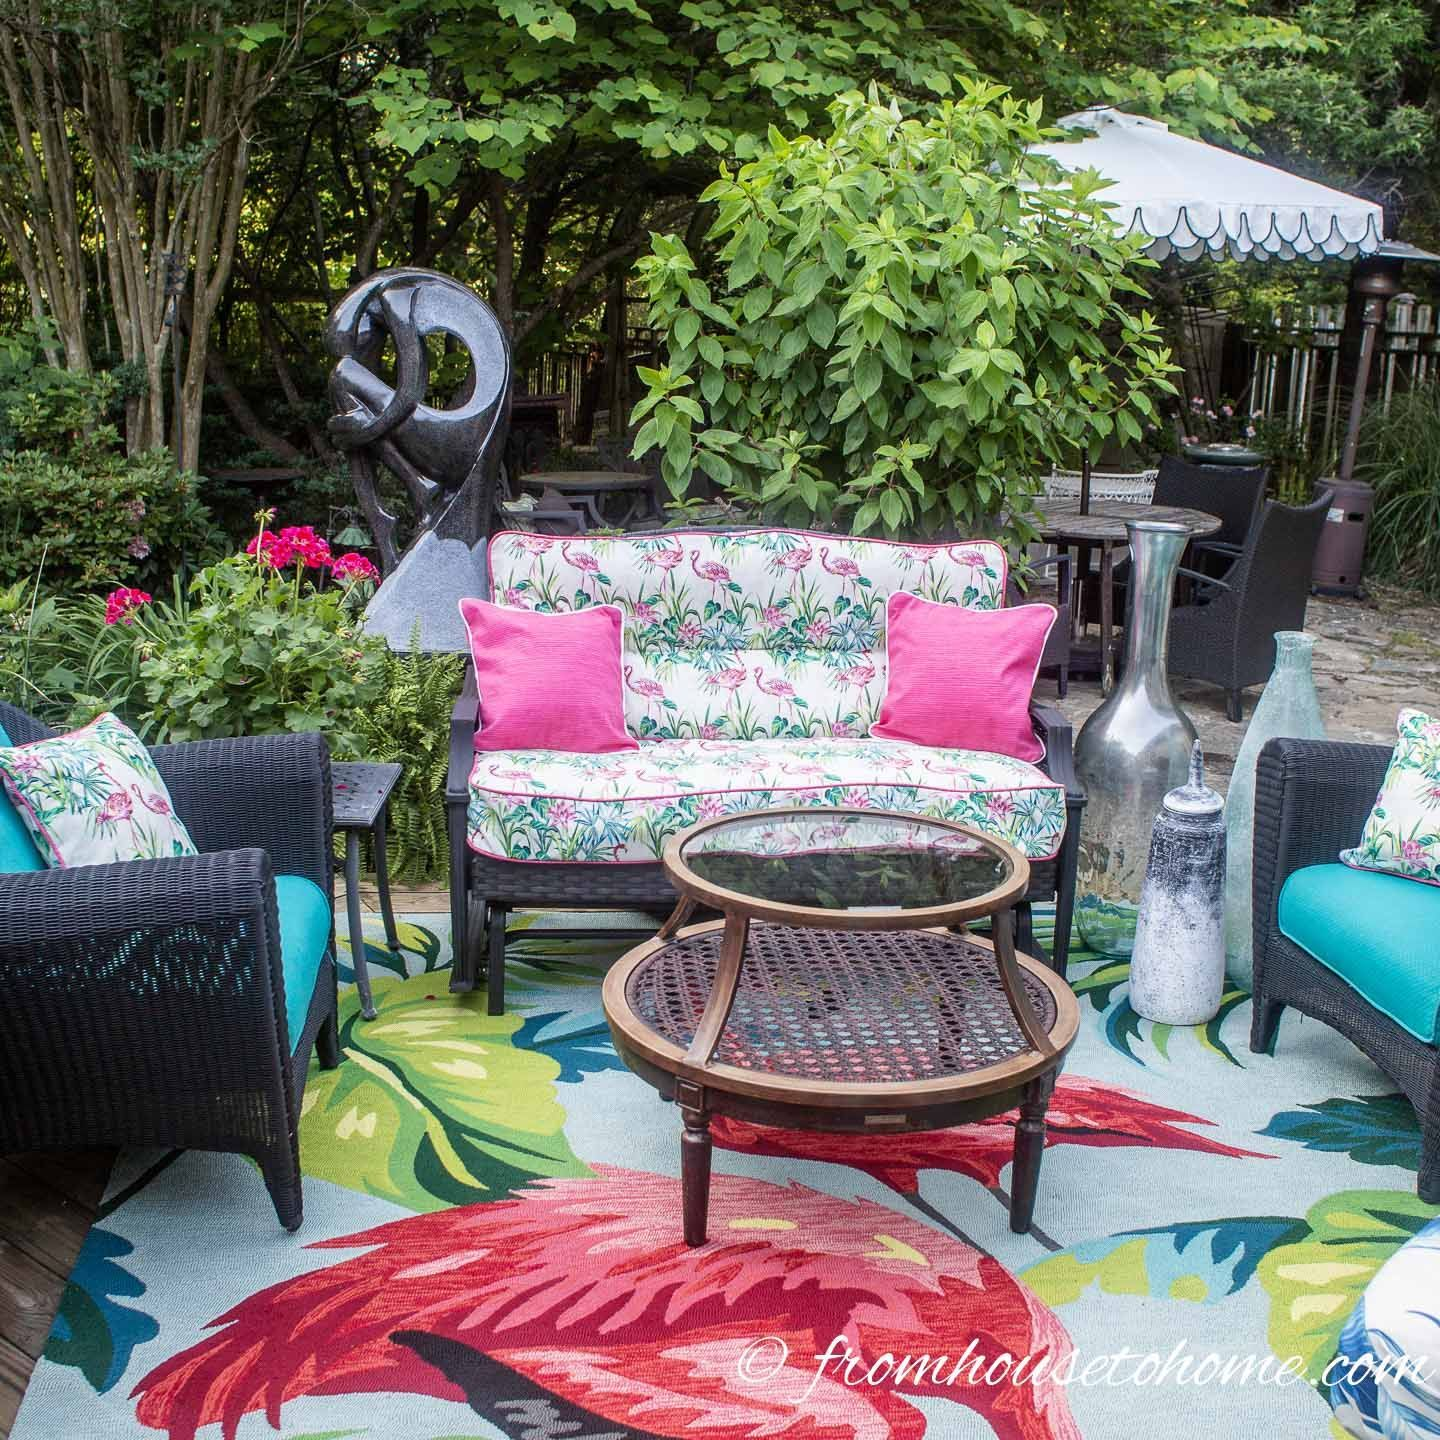 Small Patio Decorating Ideas That Make Your Deck Into An Outdoor Oasis Small Patio Decor Outdoor Patio Decor Small Patio